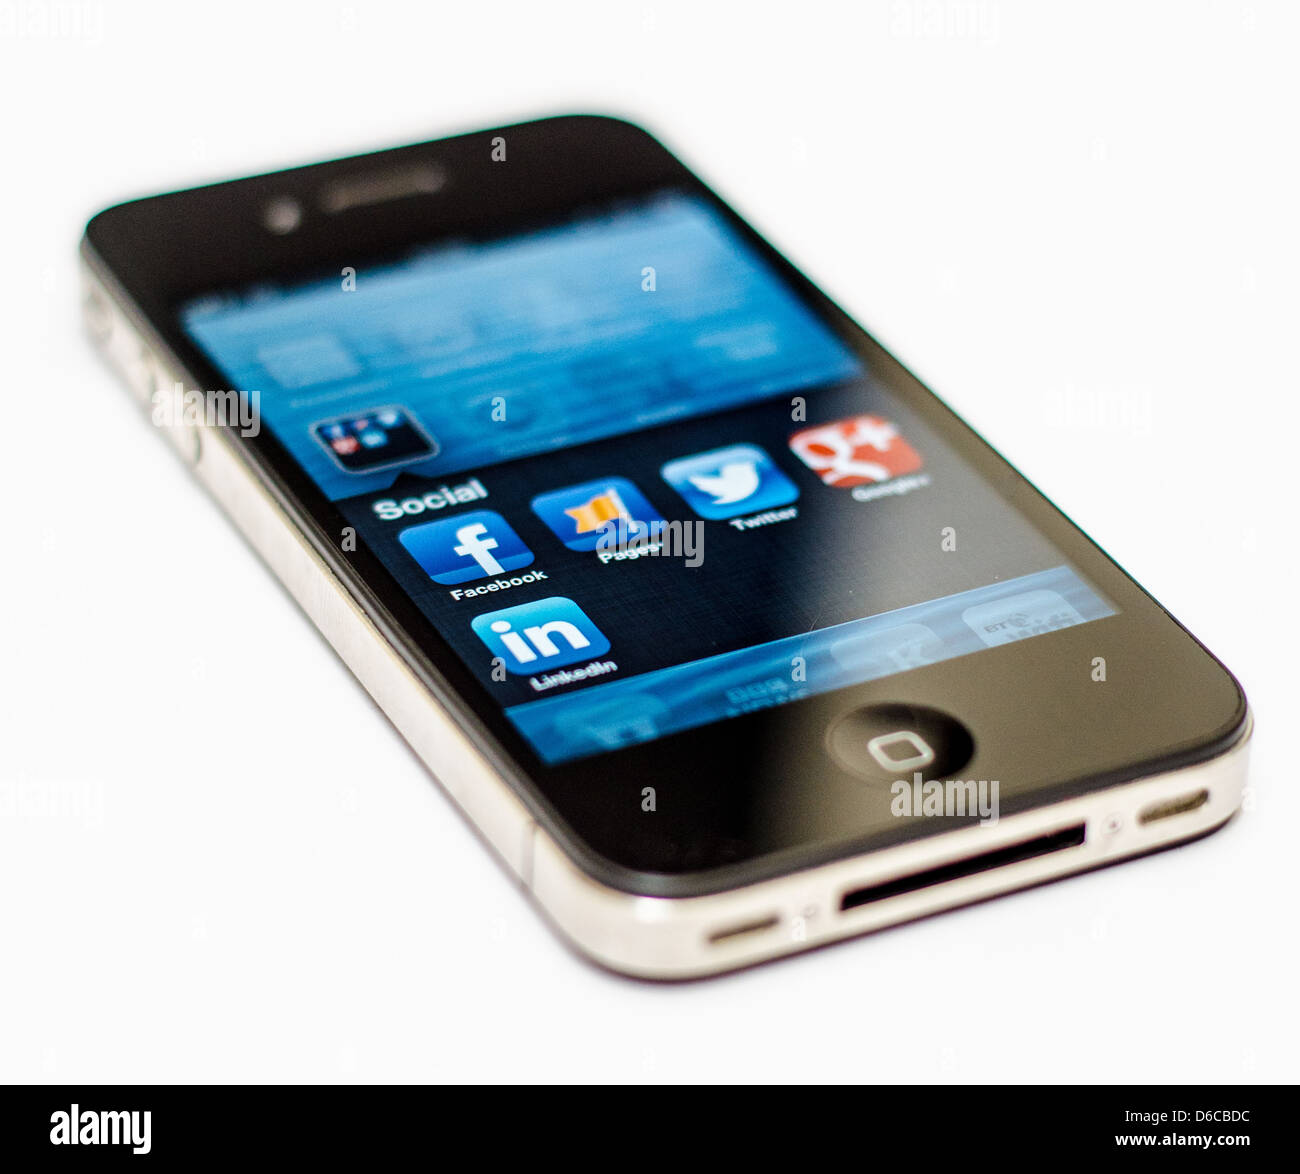 Apple iPhone on white background showing a selection of social media applications - Facebook, Twitter, Google+, - Stock Image